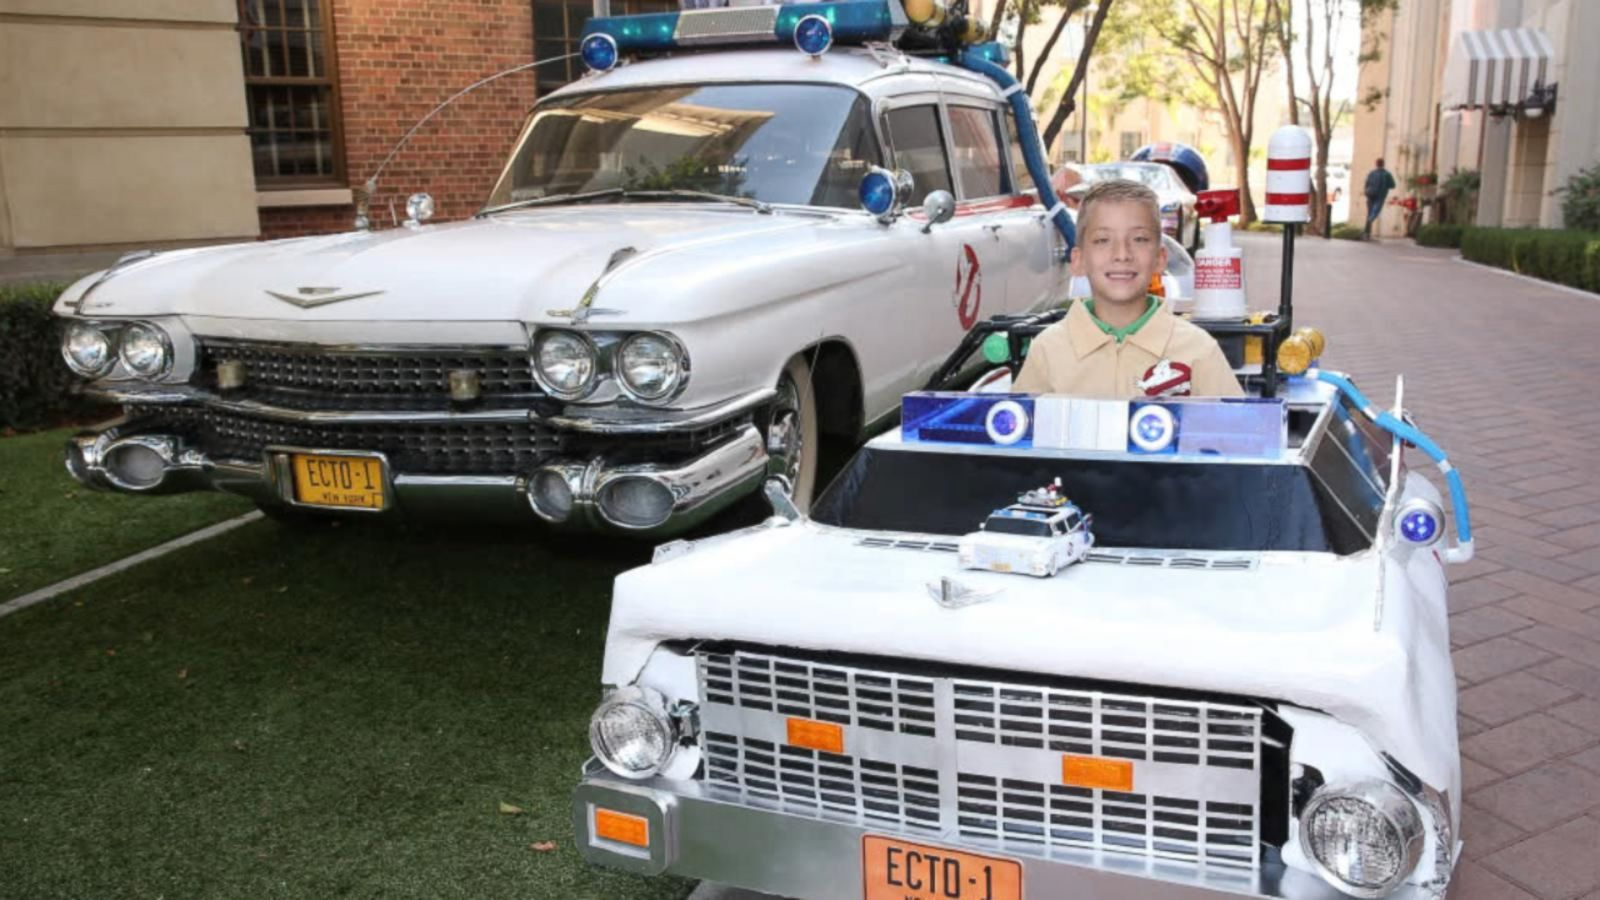 Boy With Ecto-1 Car Costume Visits 'Ghostbusters'